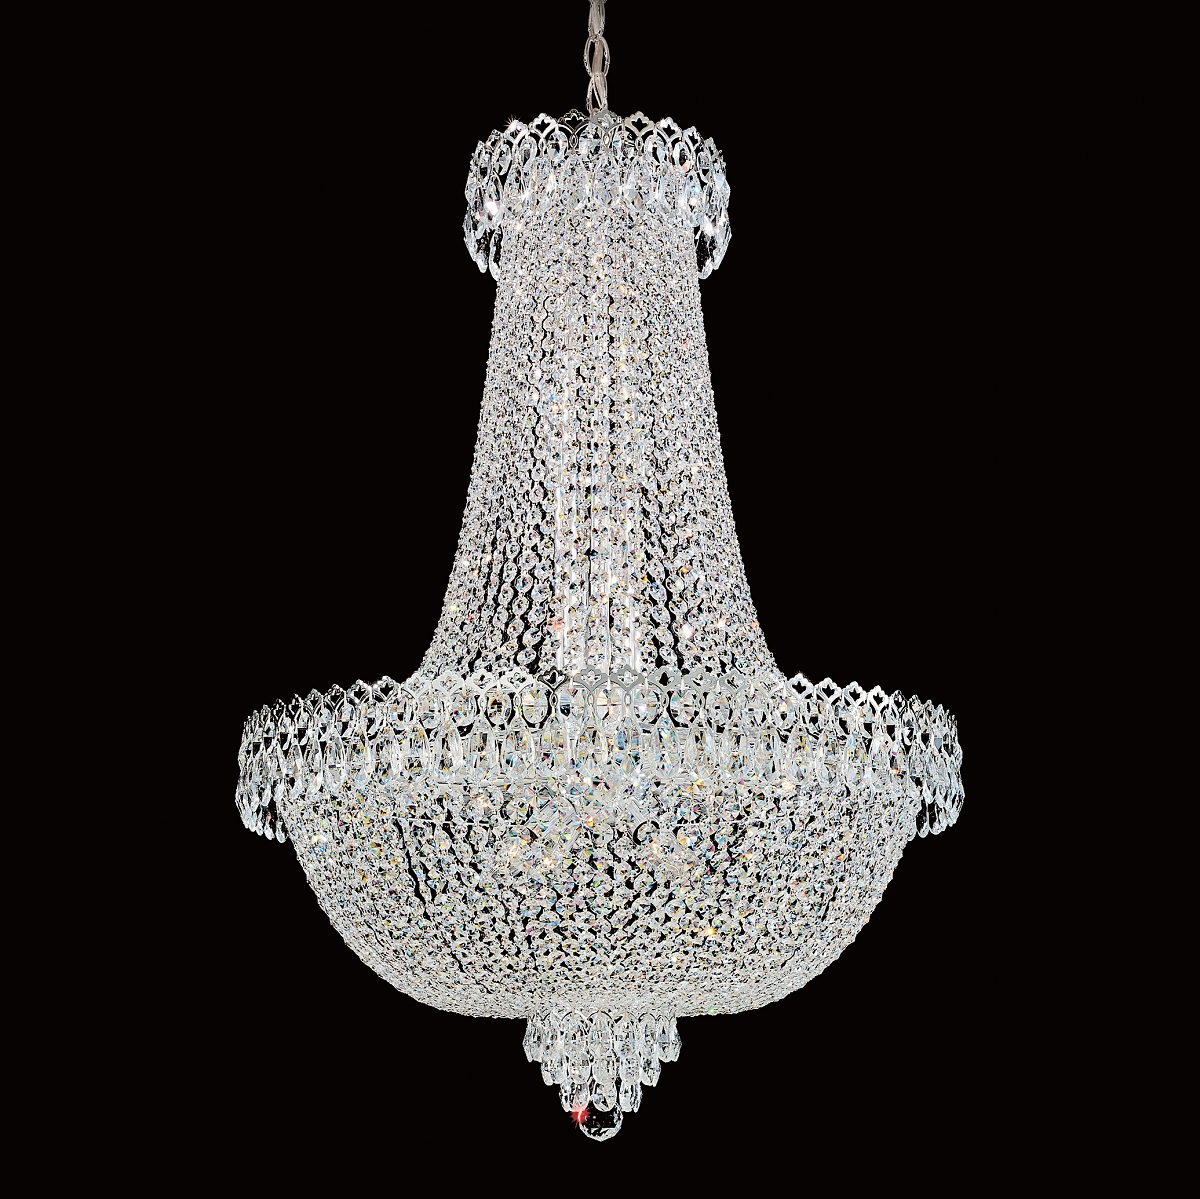 Schonbek Crystal Chandeliers Brooklyn,New York from Accentuations Brand